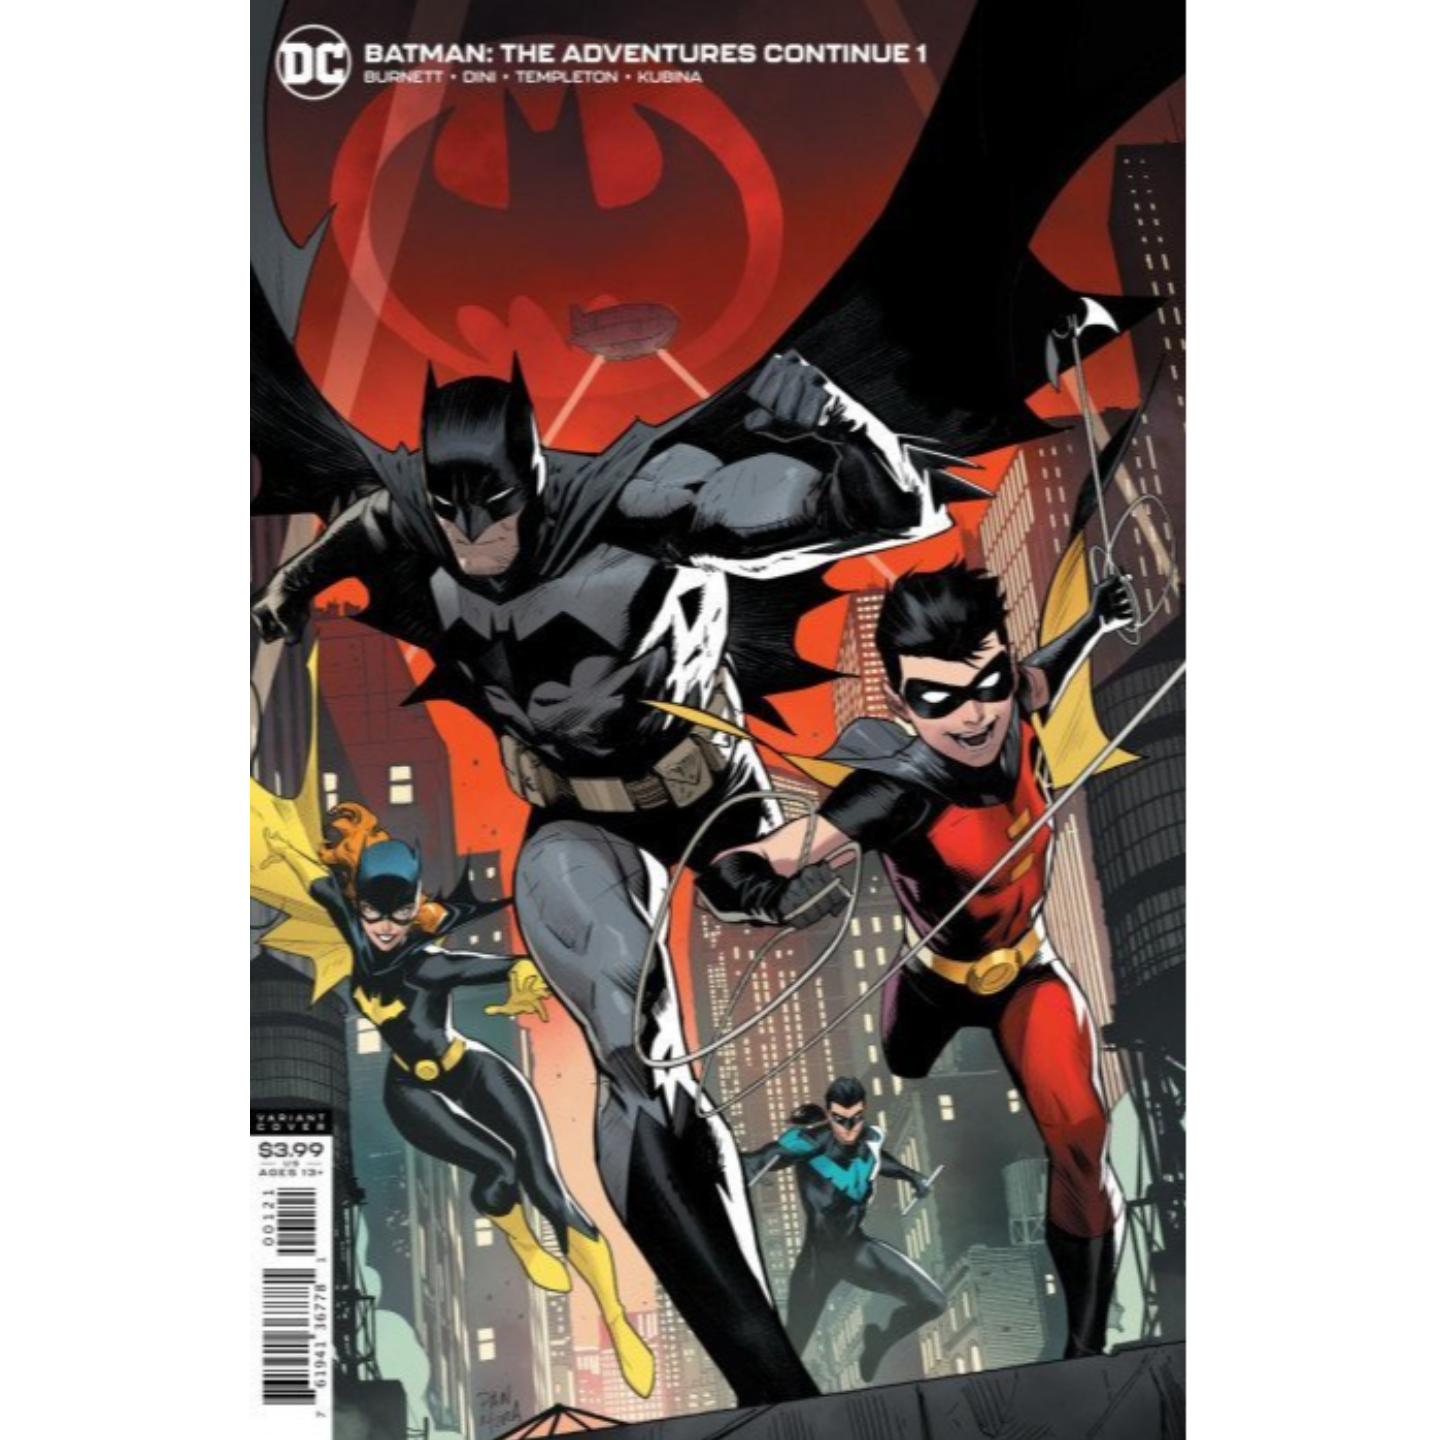 BATMAN: THE ADVENTURES CONTINUE #1 VARIANT COVER BY DAN MORA